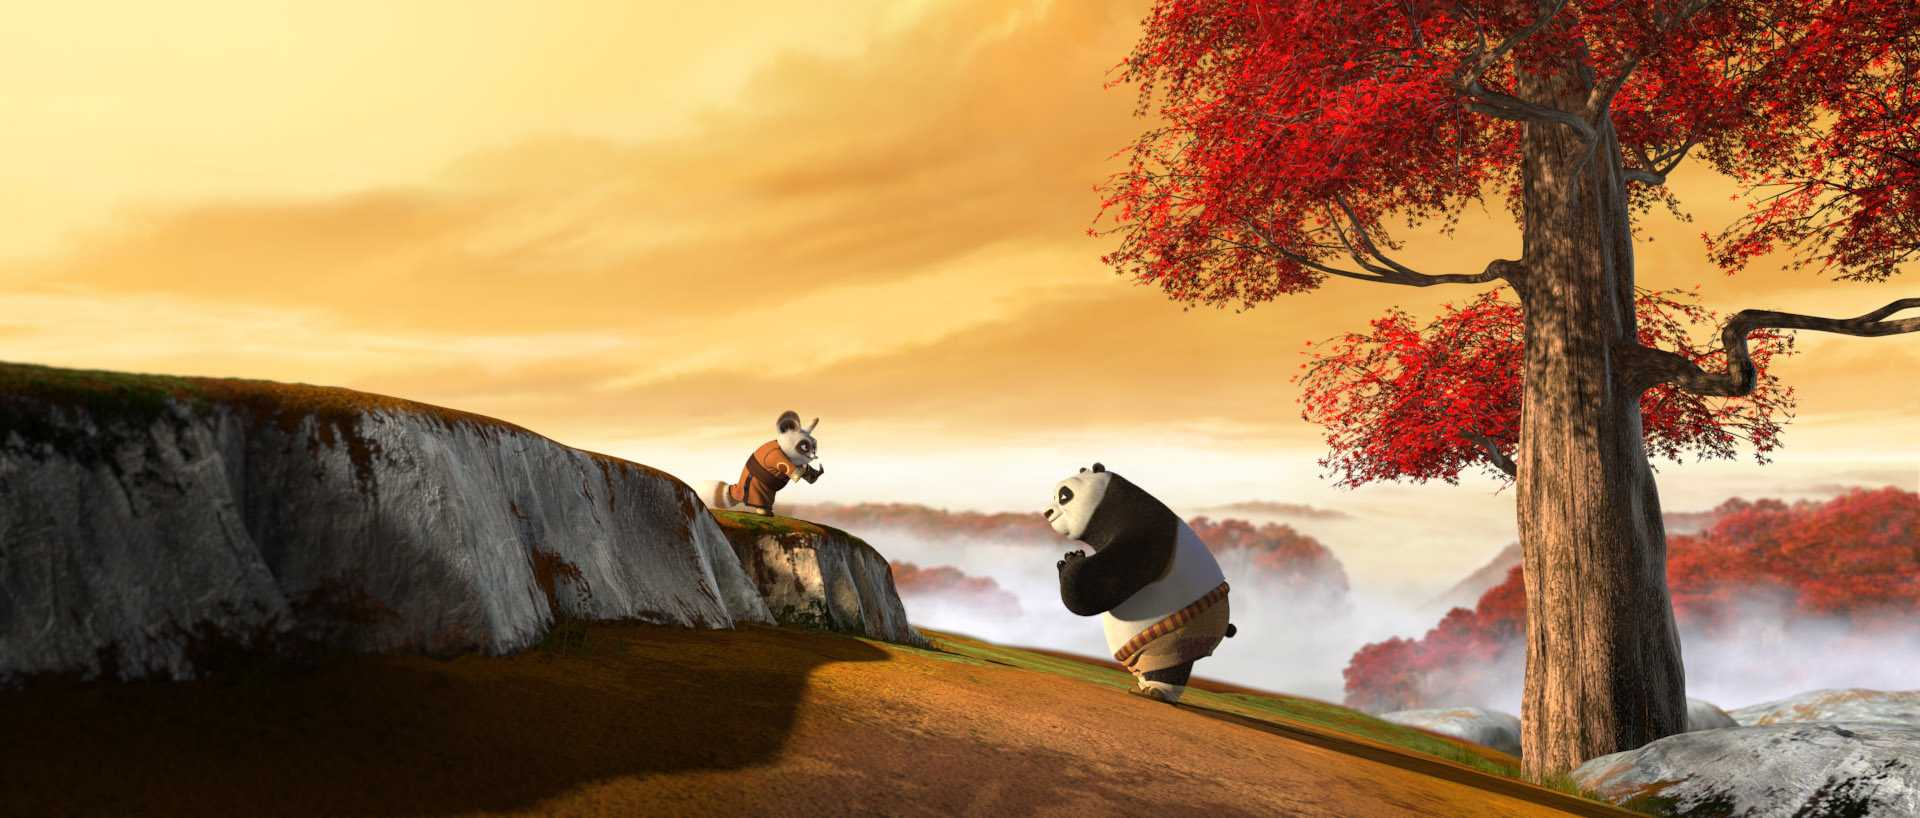 shifu teaches